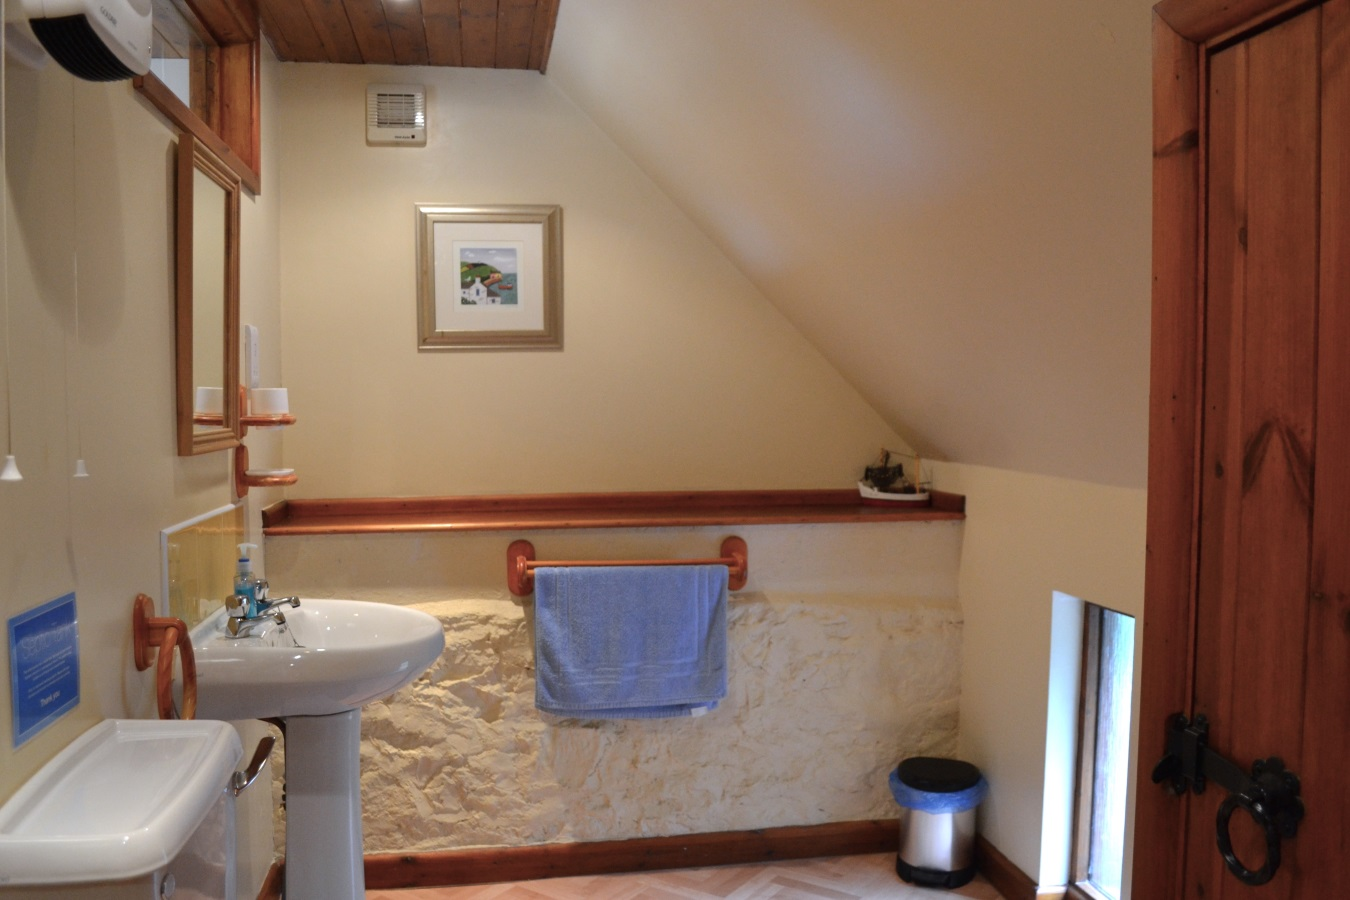 Lake View Bathroom at Little Dunley Cottages